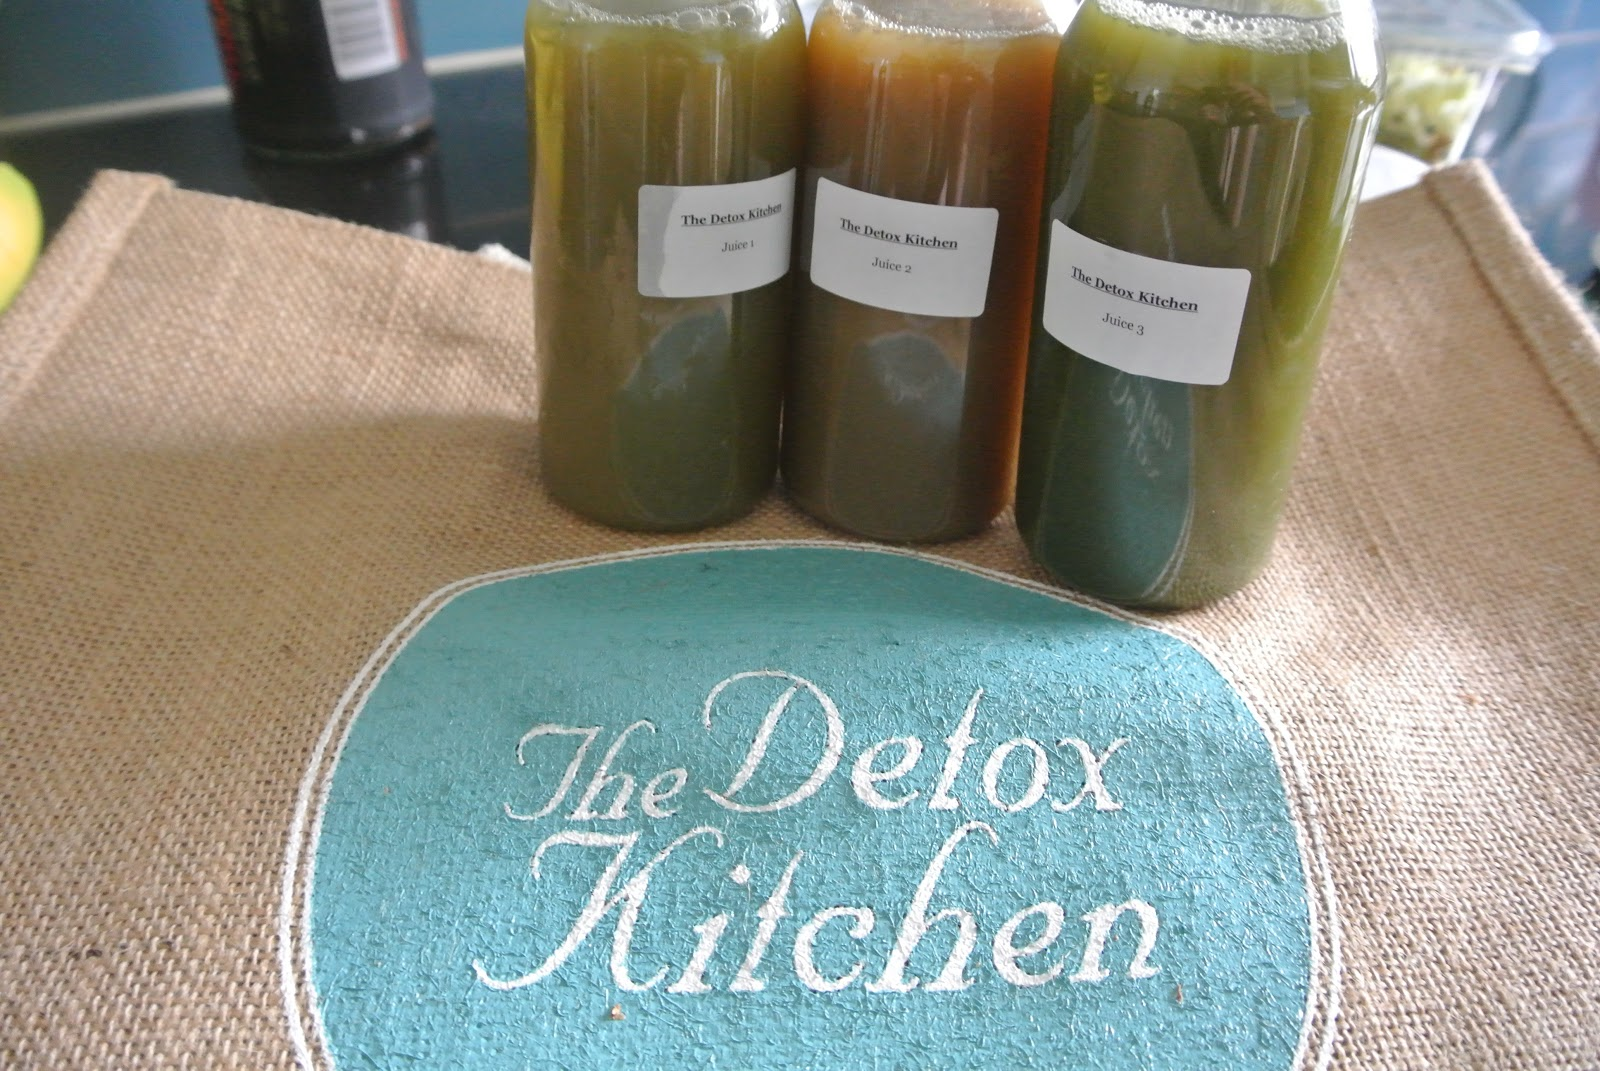 Tedox Kchen. Awesome The Detox Kitchen Deli And Delivery With Tedox ...